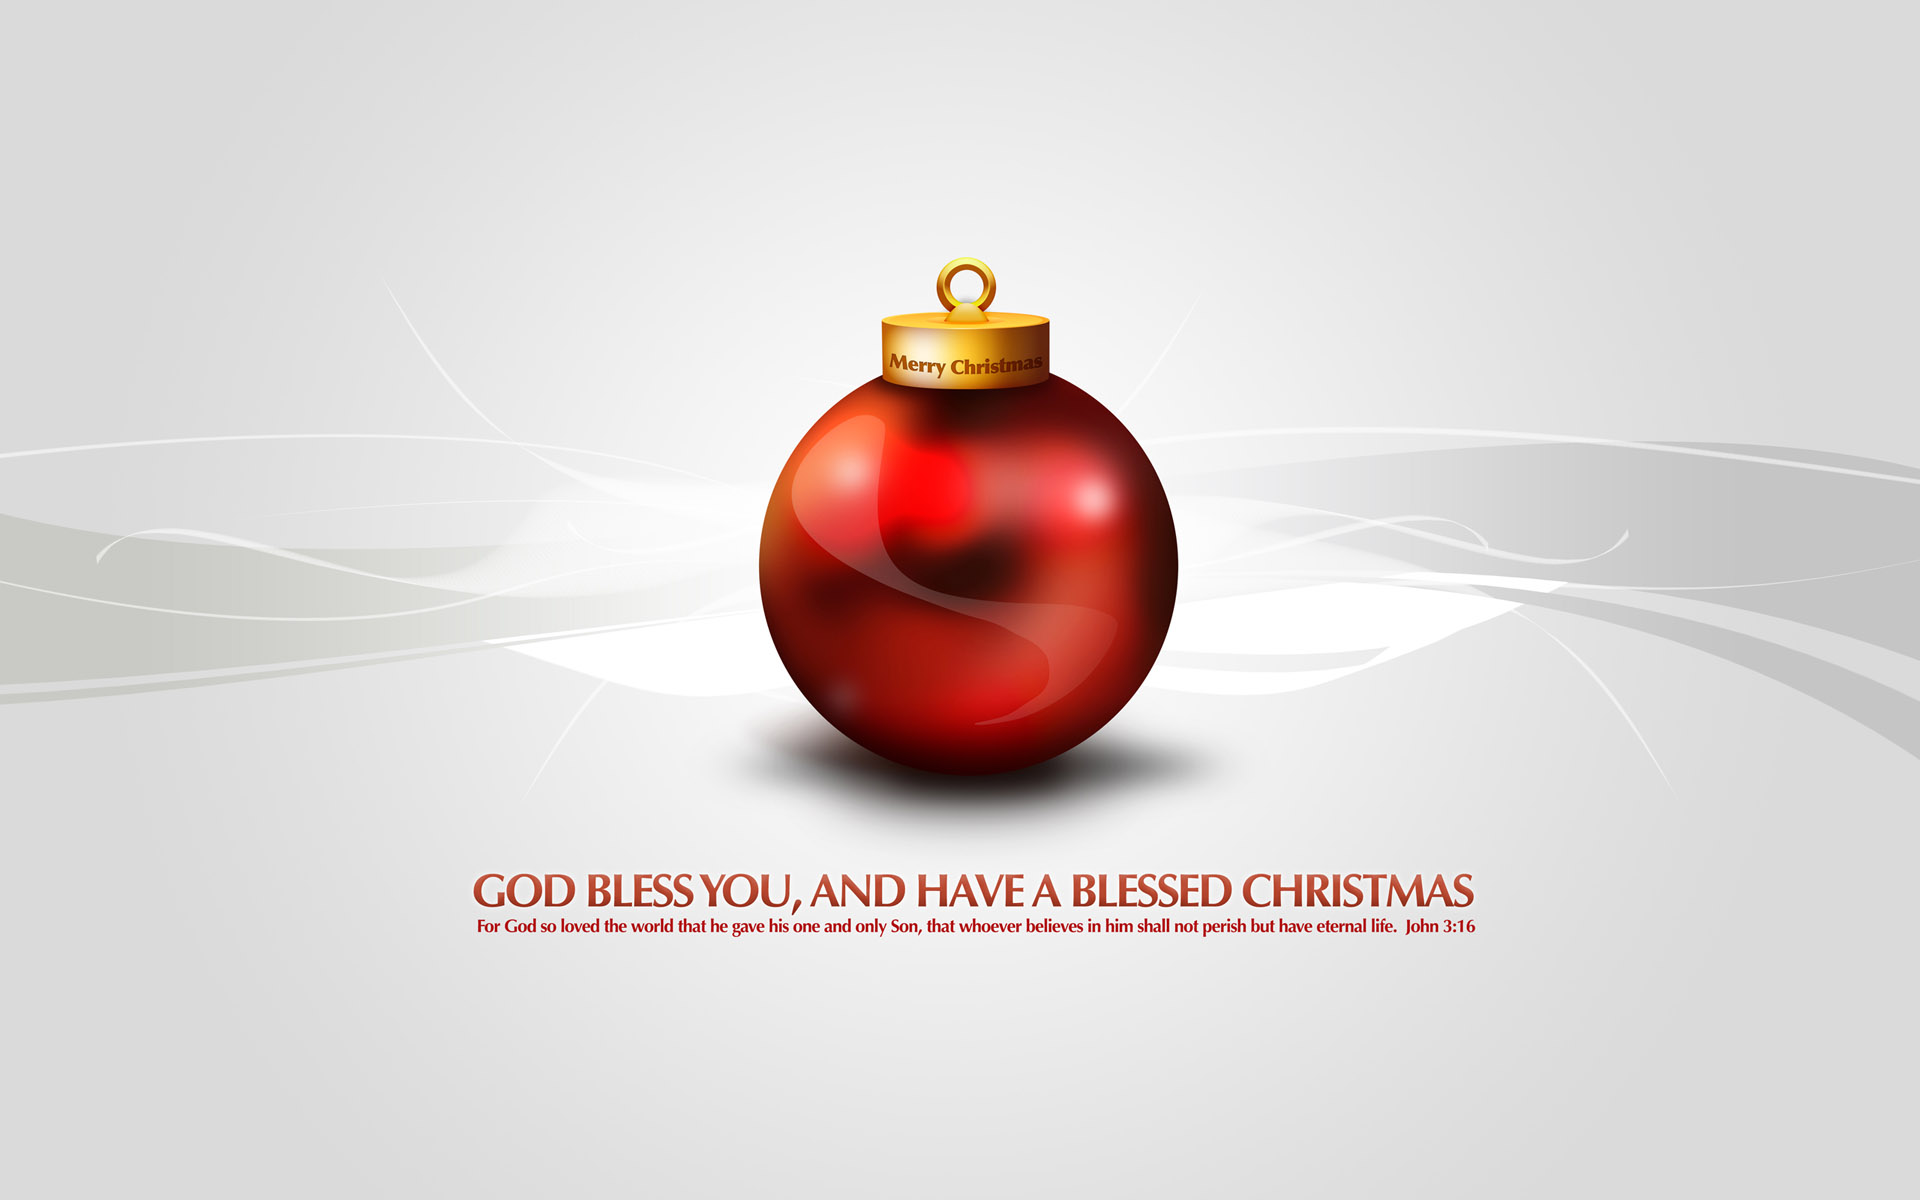 HD Wallpapers Merry Christmas God Bless You